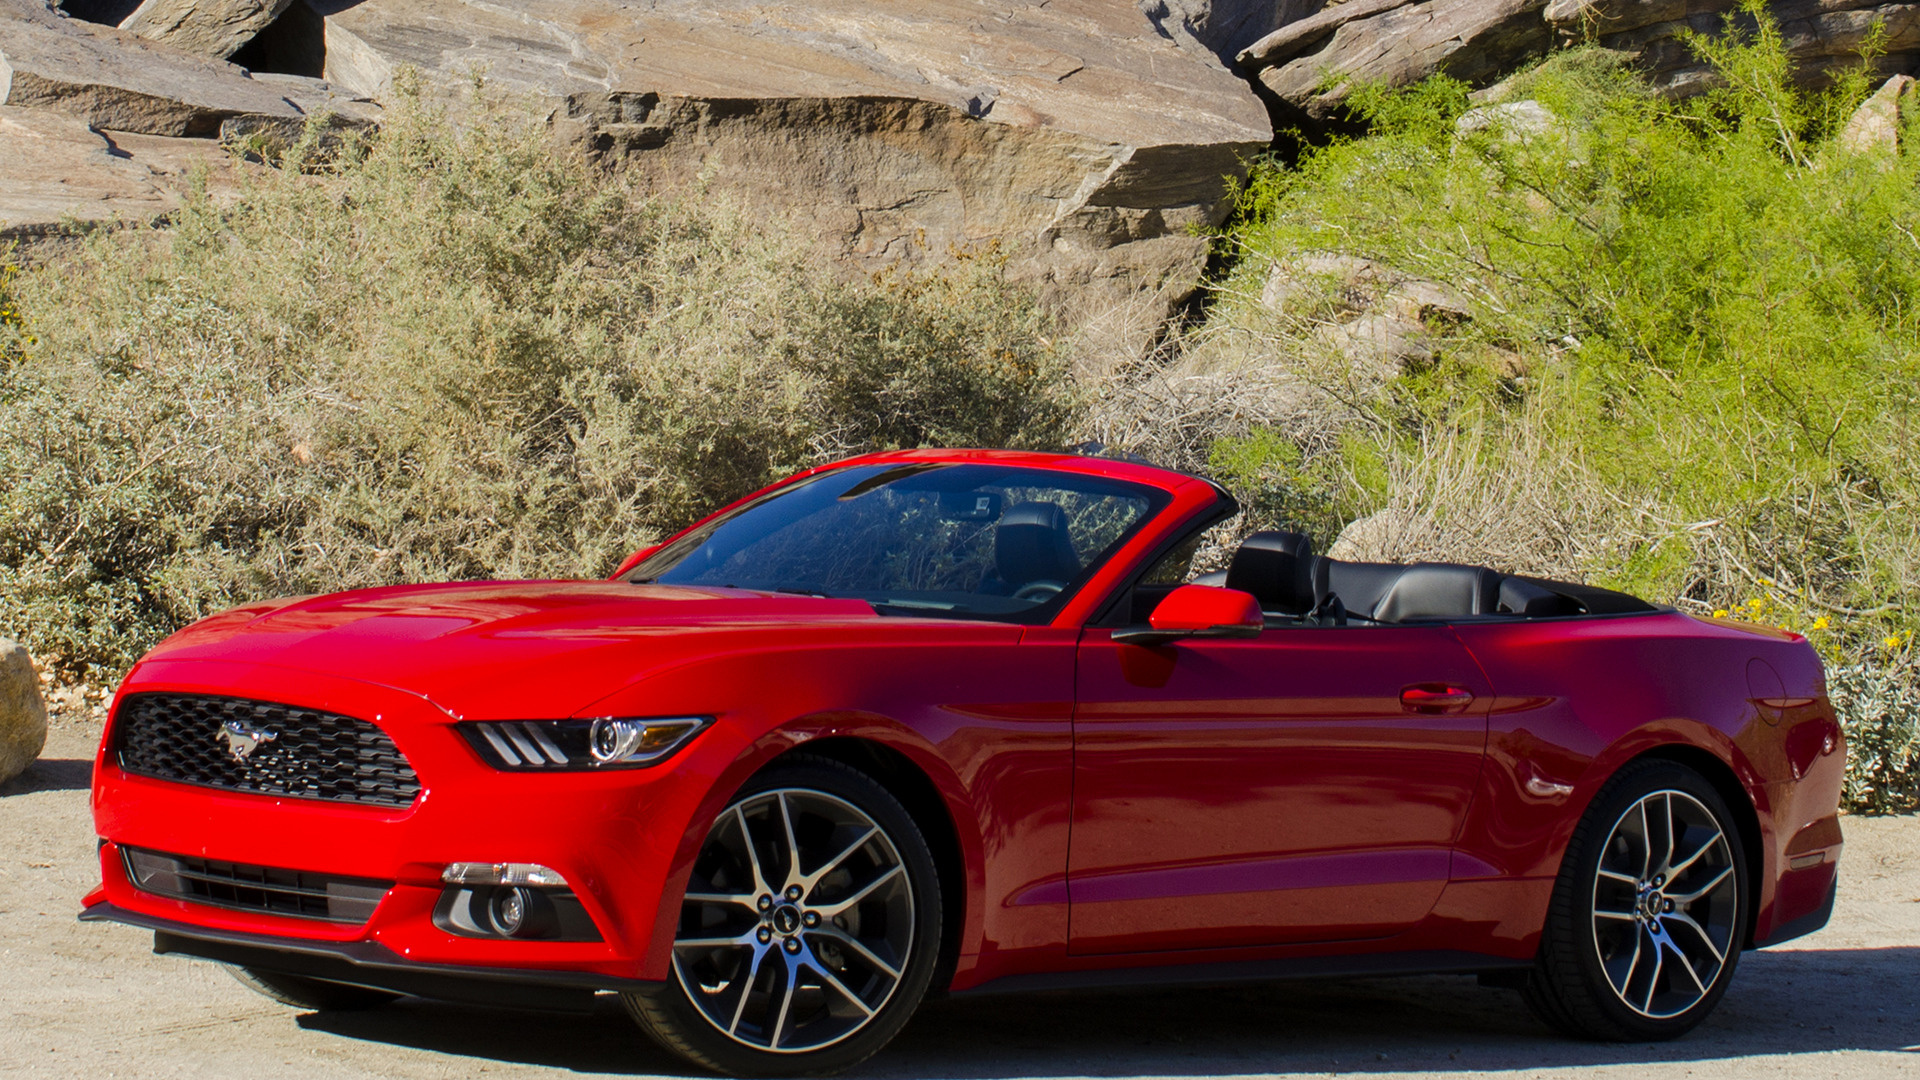 Ford Mustang EcoBoost Convertible (2015) Wallpapers and HD Images ...